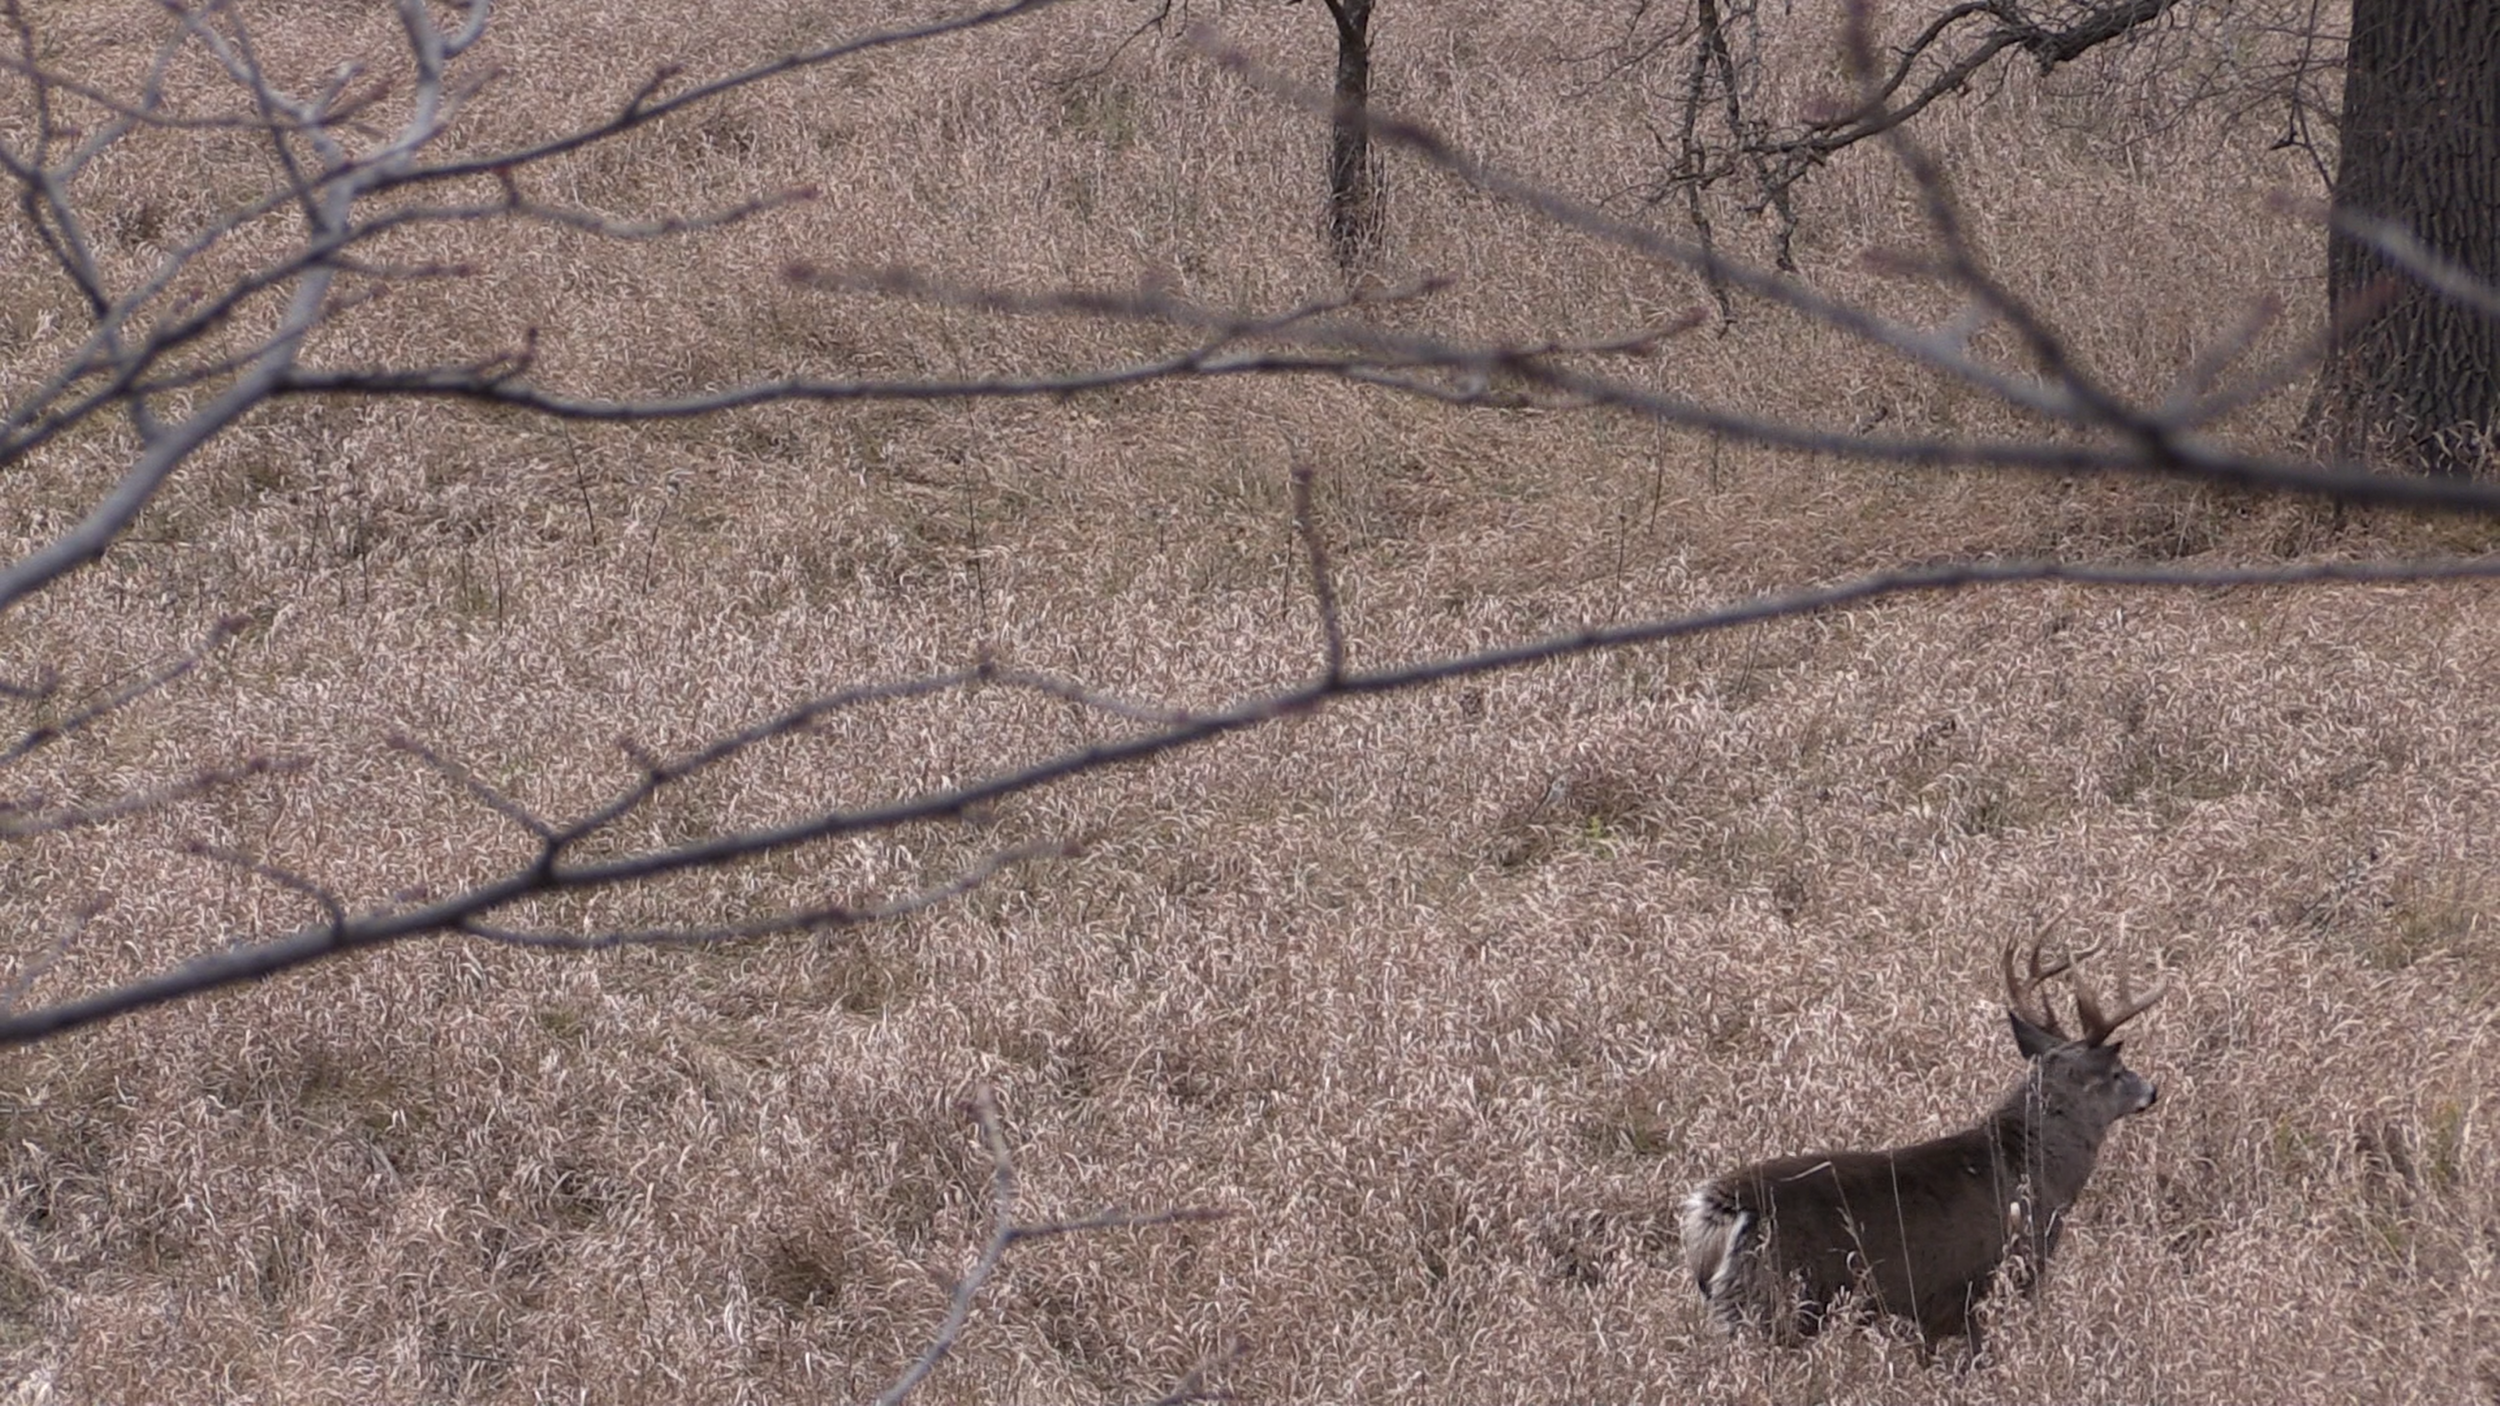 Moments before the shot...the buck walked out of the frame before I could get a shot off.